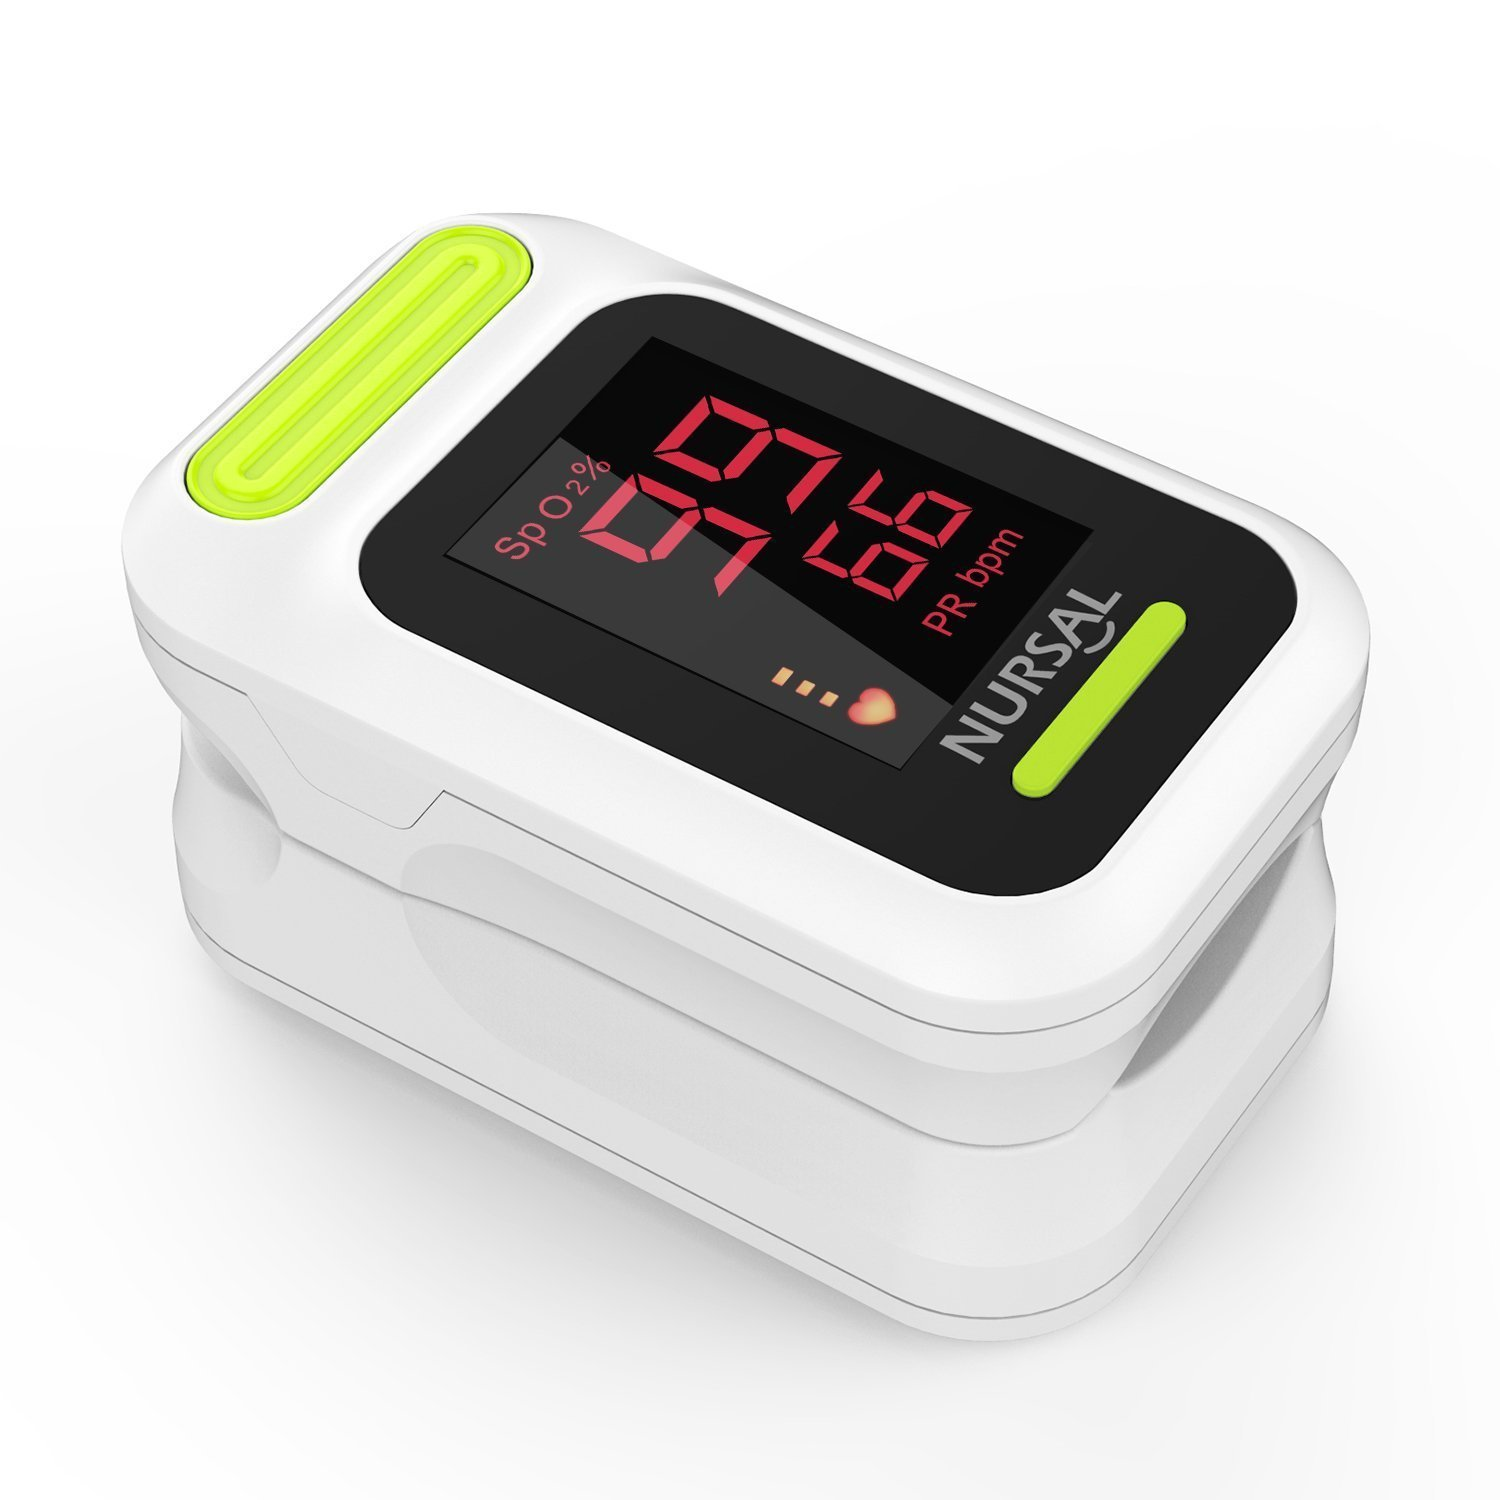 NURSAL Fingertip Pulse Oximeter Blood Oxygen Saturation Monitor with Carrying Case & Lanyard, White by NURSAL (Image #1)